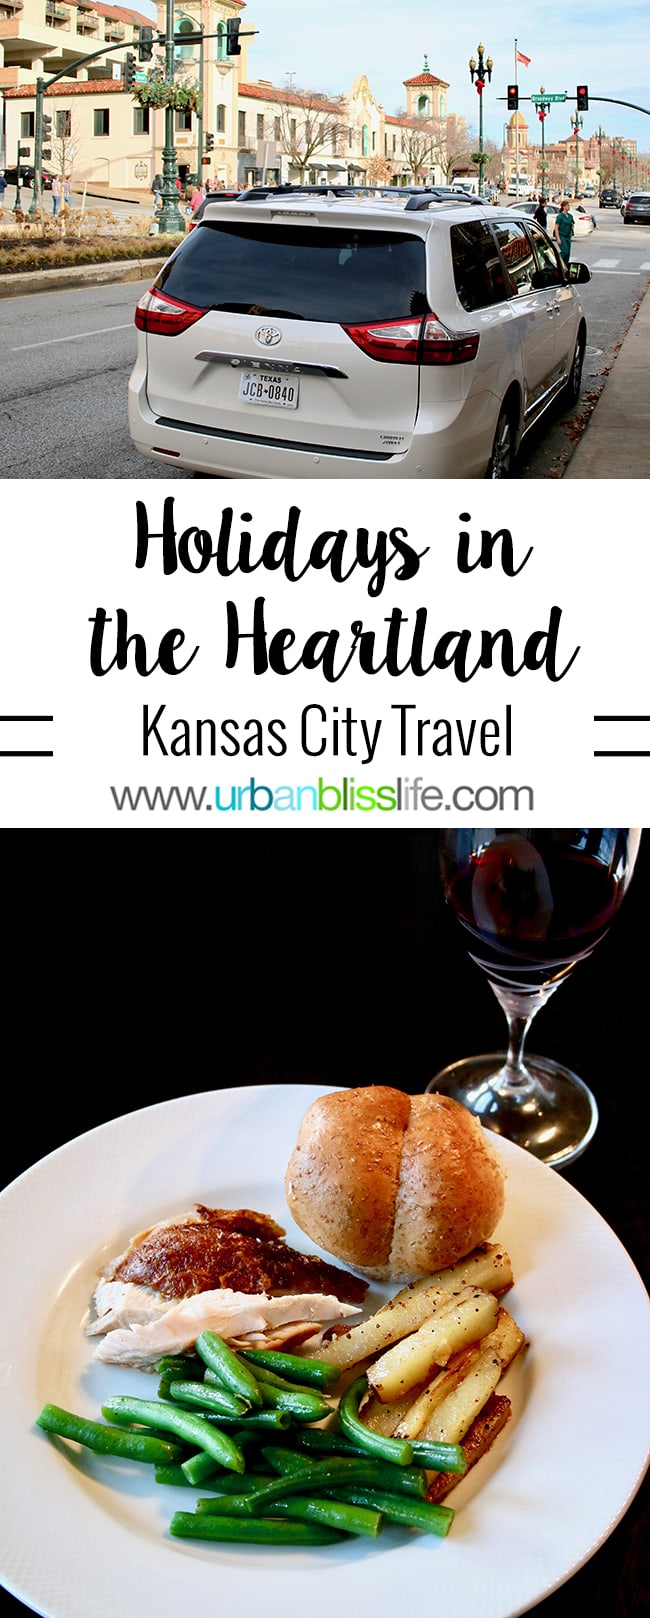 Holidays in the Heartland: Kansas on UrbanBlissLife.com